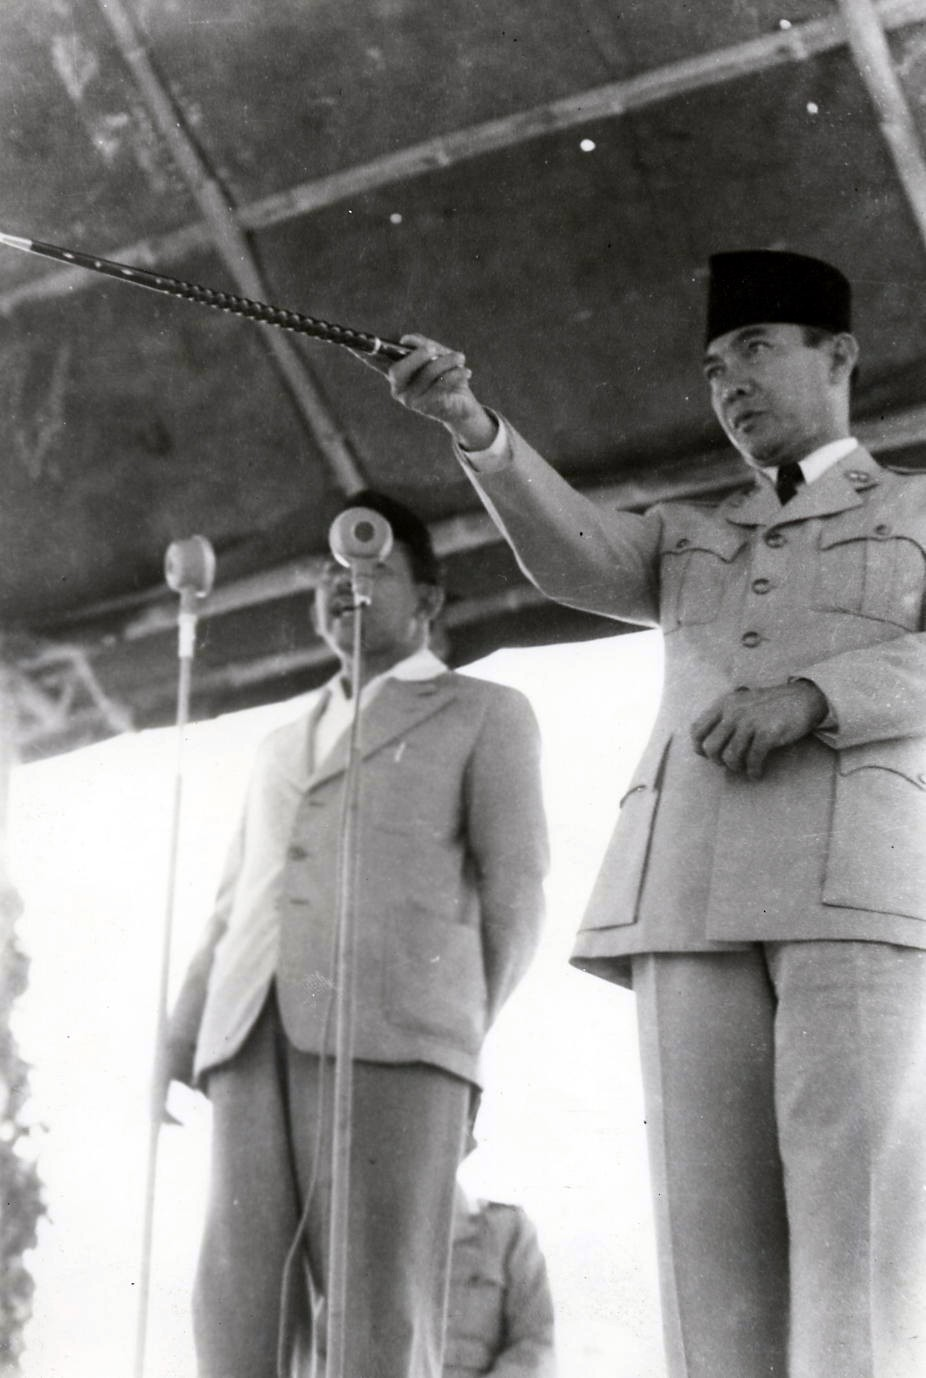 Soekarno Hero Or Dictator A Rather Unpopular Opinion On By Le Citoyen P C Le Citoyen Medium